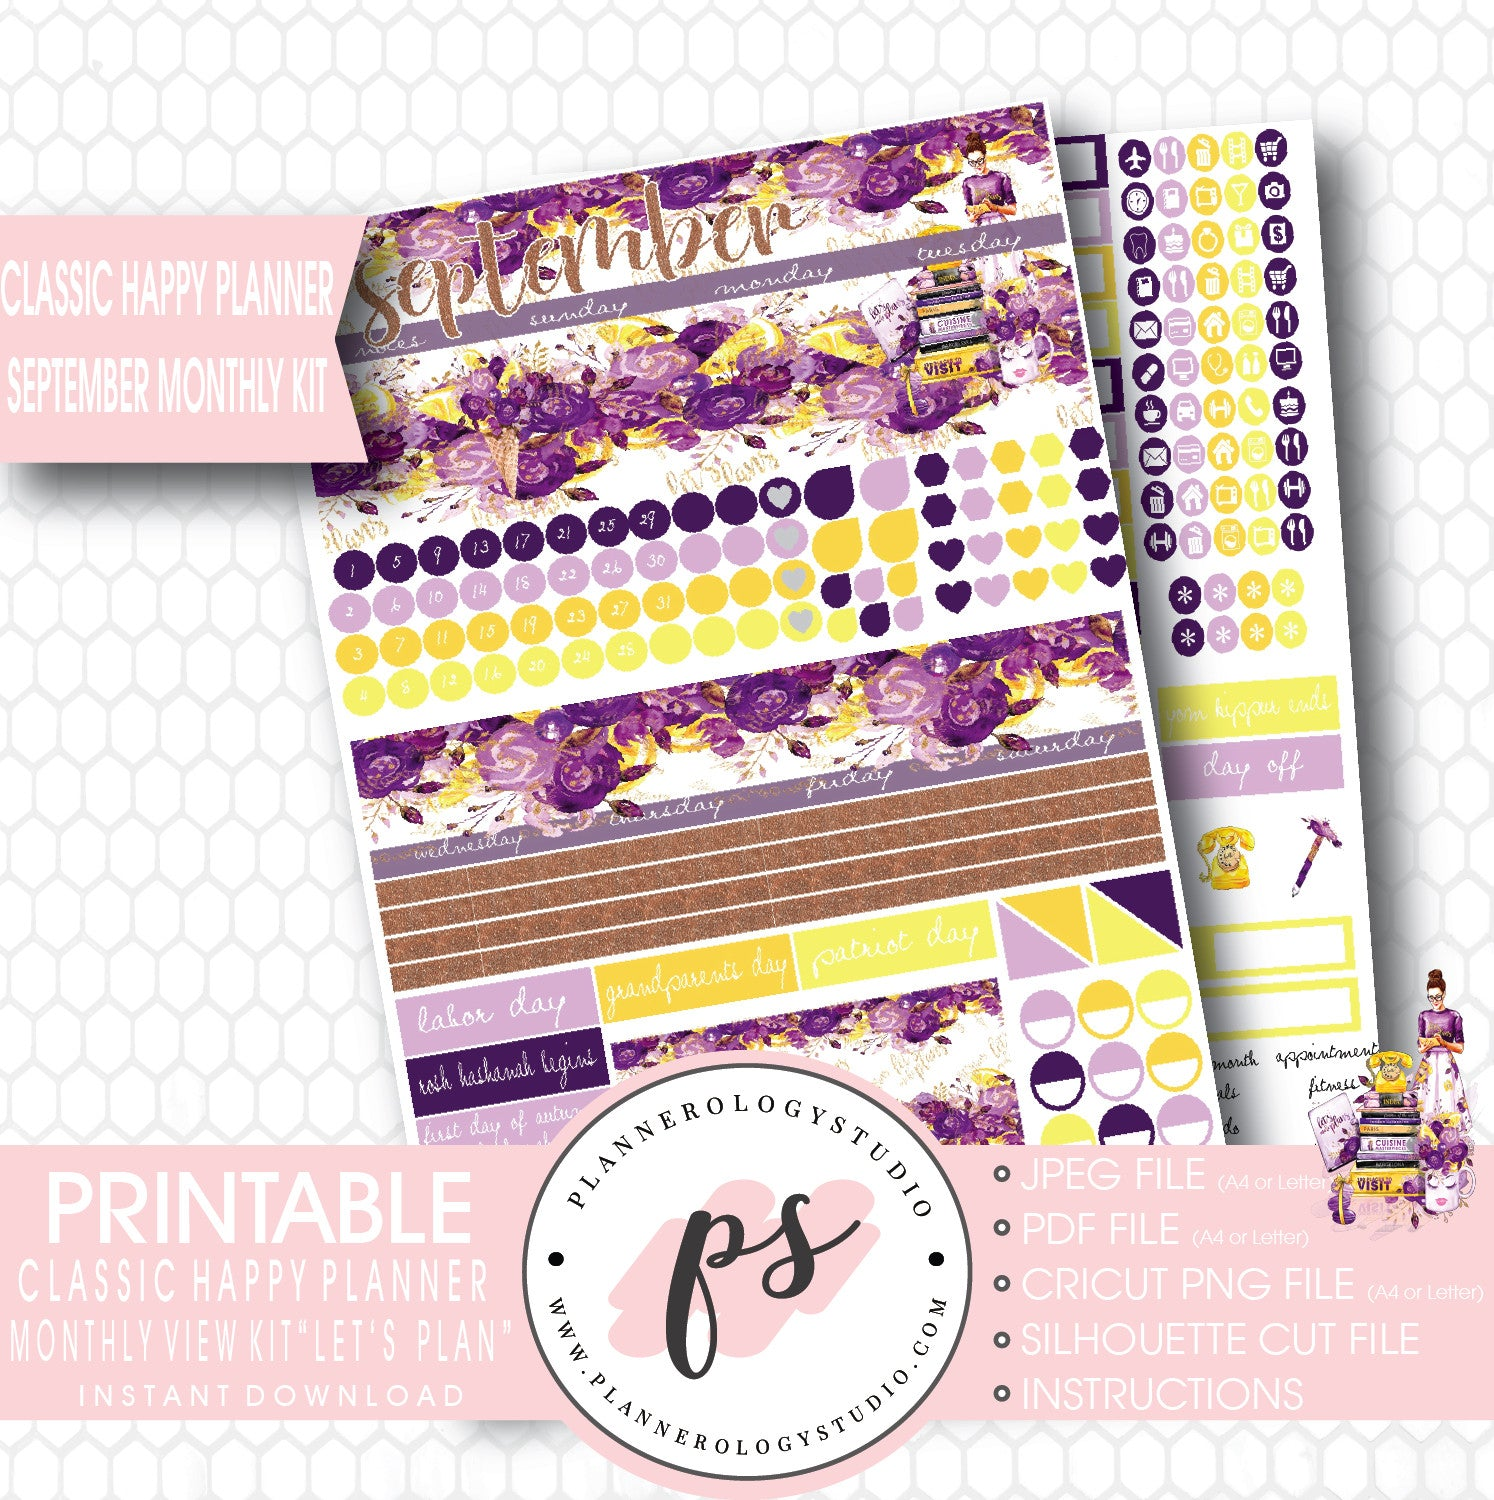 Let S Plan September 2017 Monthly View Kit Printable Planner